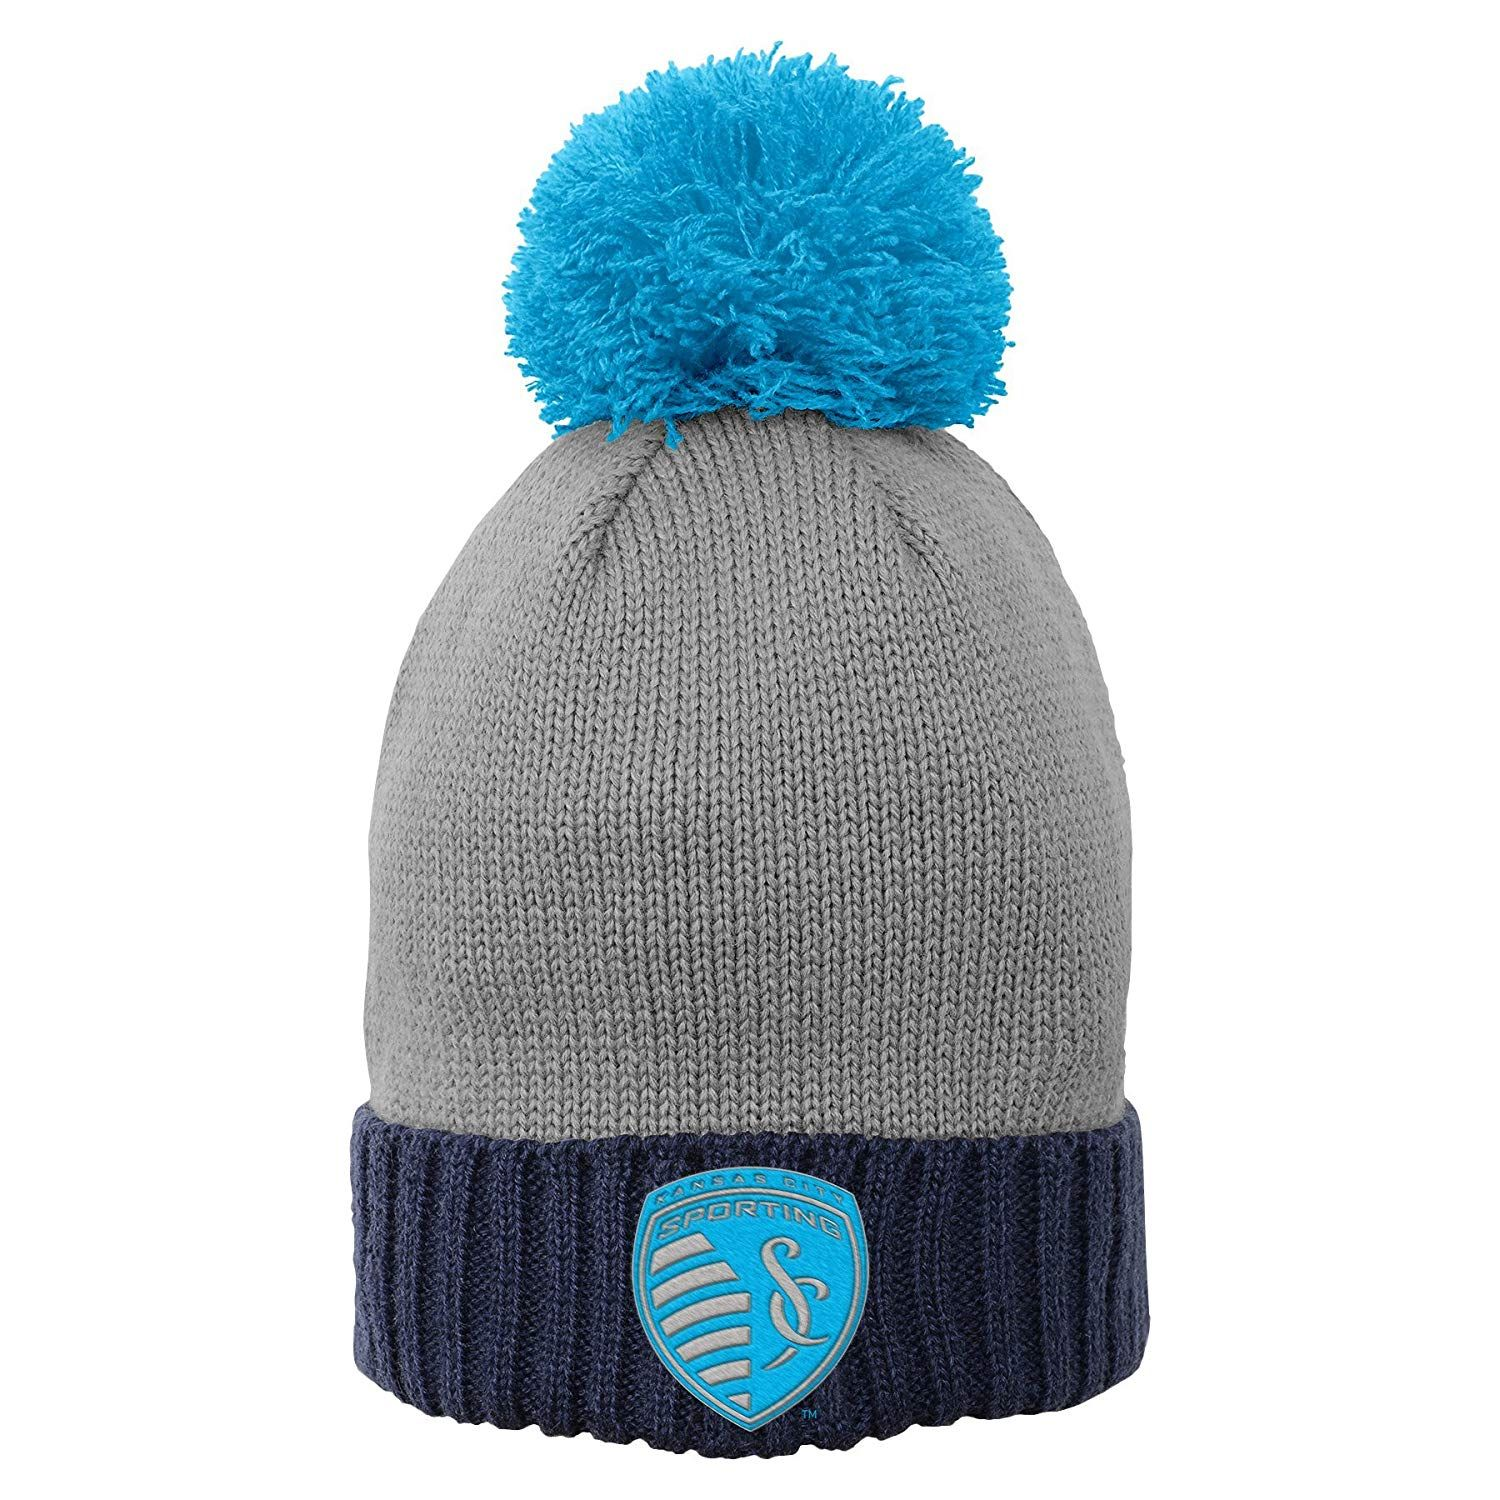 MLS by Outerstuff Girls Cuffed Knit Hat with Enlarged Pom